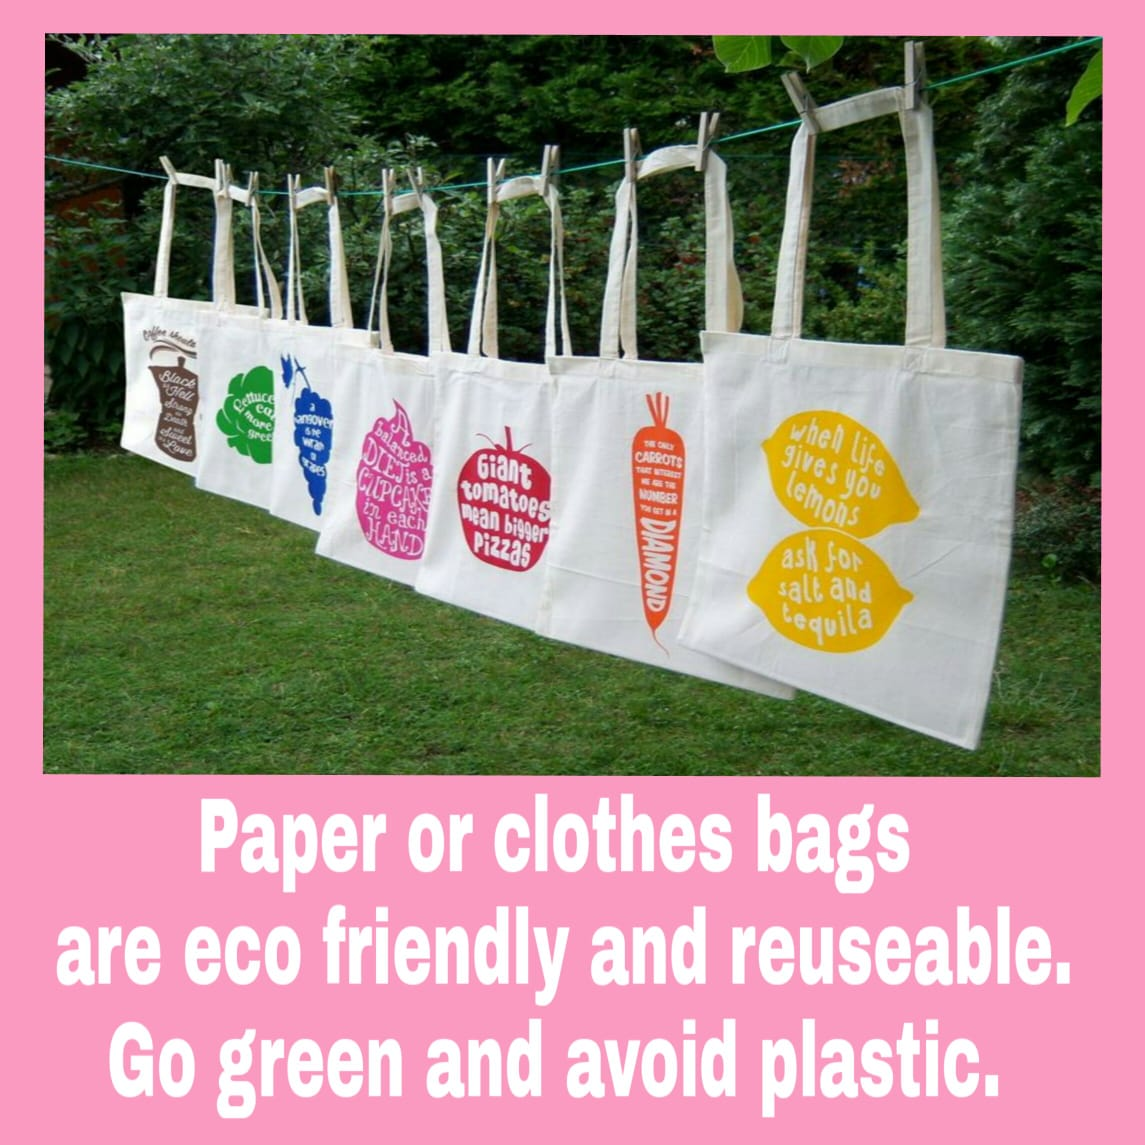 #Thisbagsavestheearth Latest News Trends Updates Images - ReetuInsa8